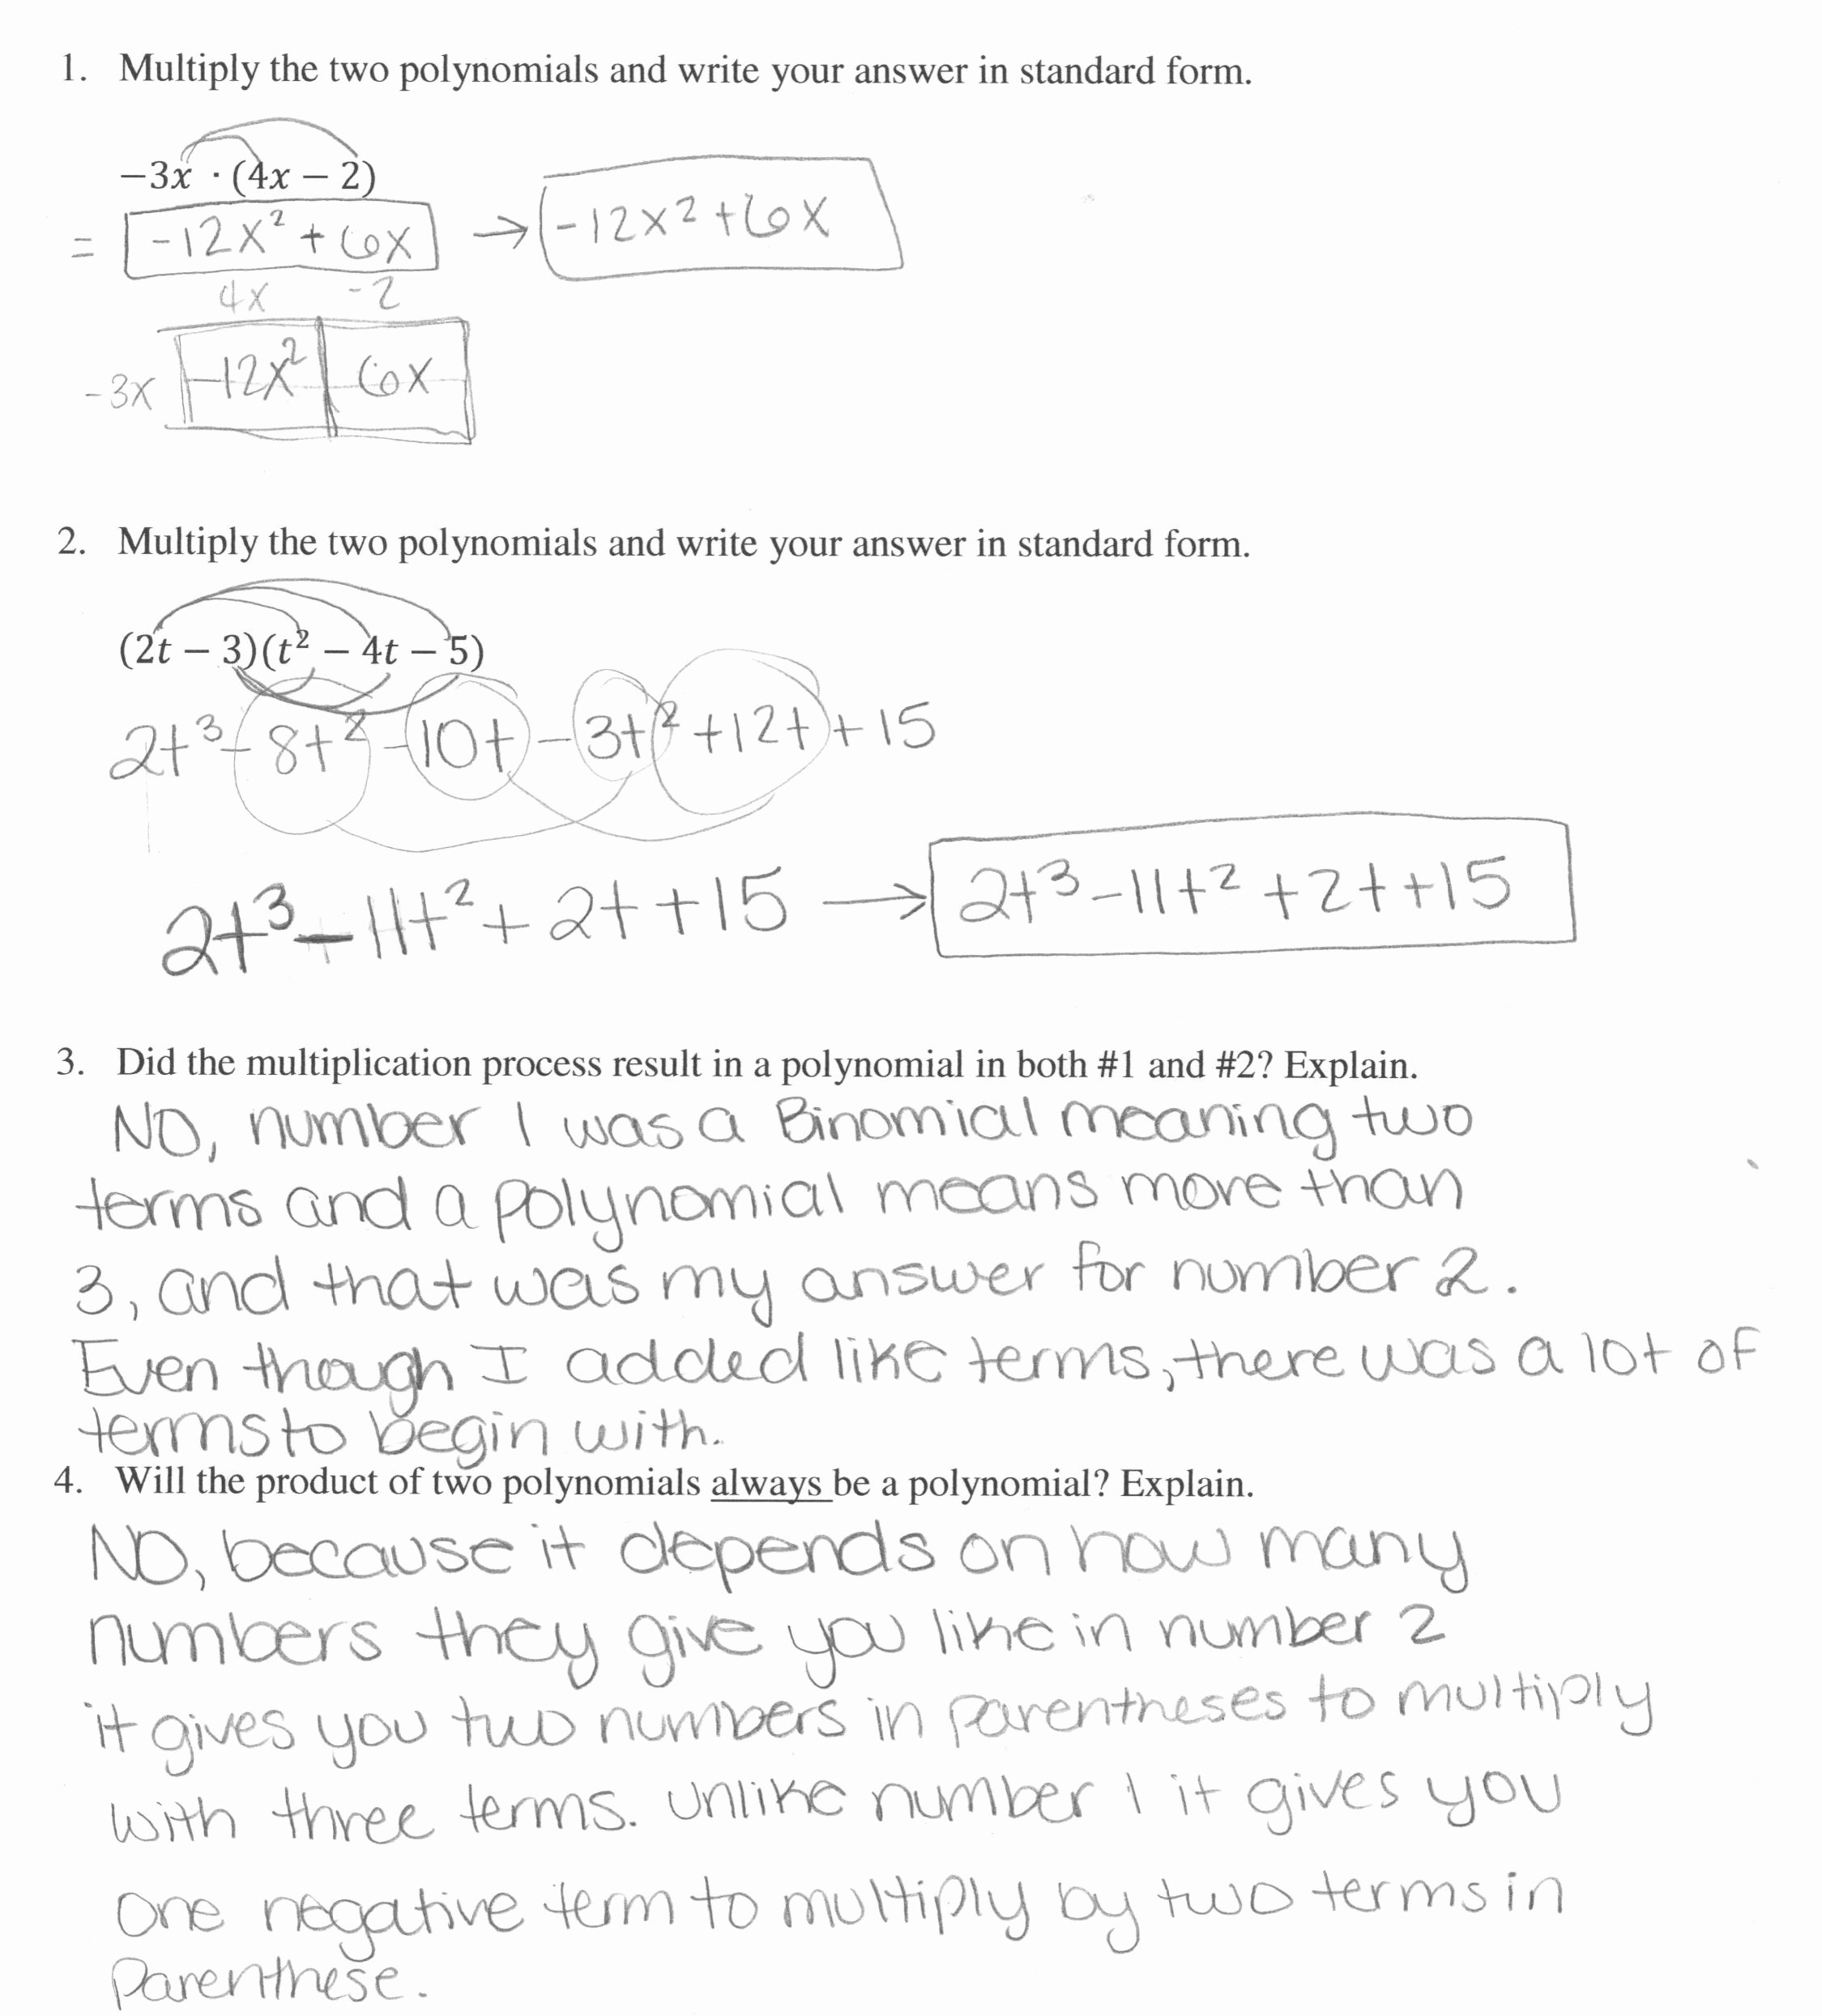 Multiplying Polynomials Worksheet 1 Answers New Multiplying Polynomials 1